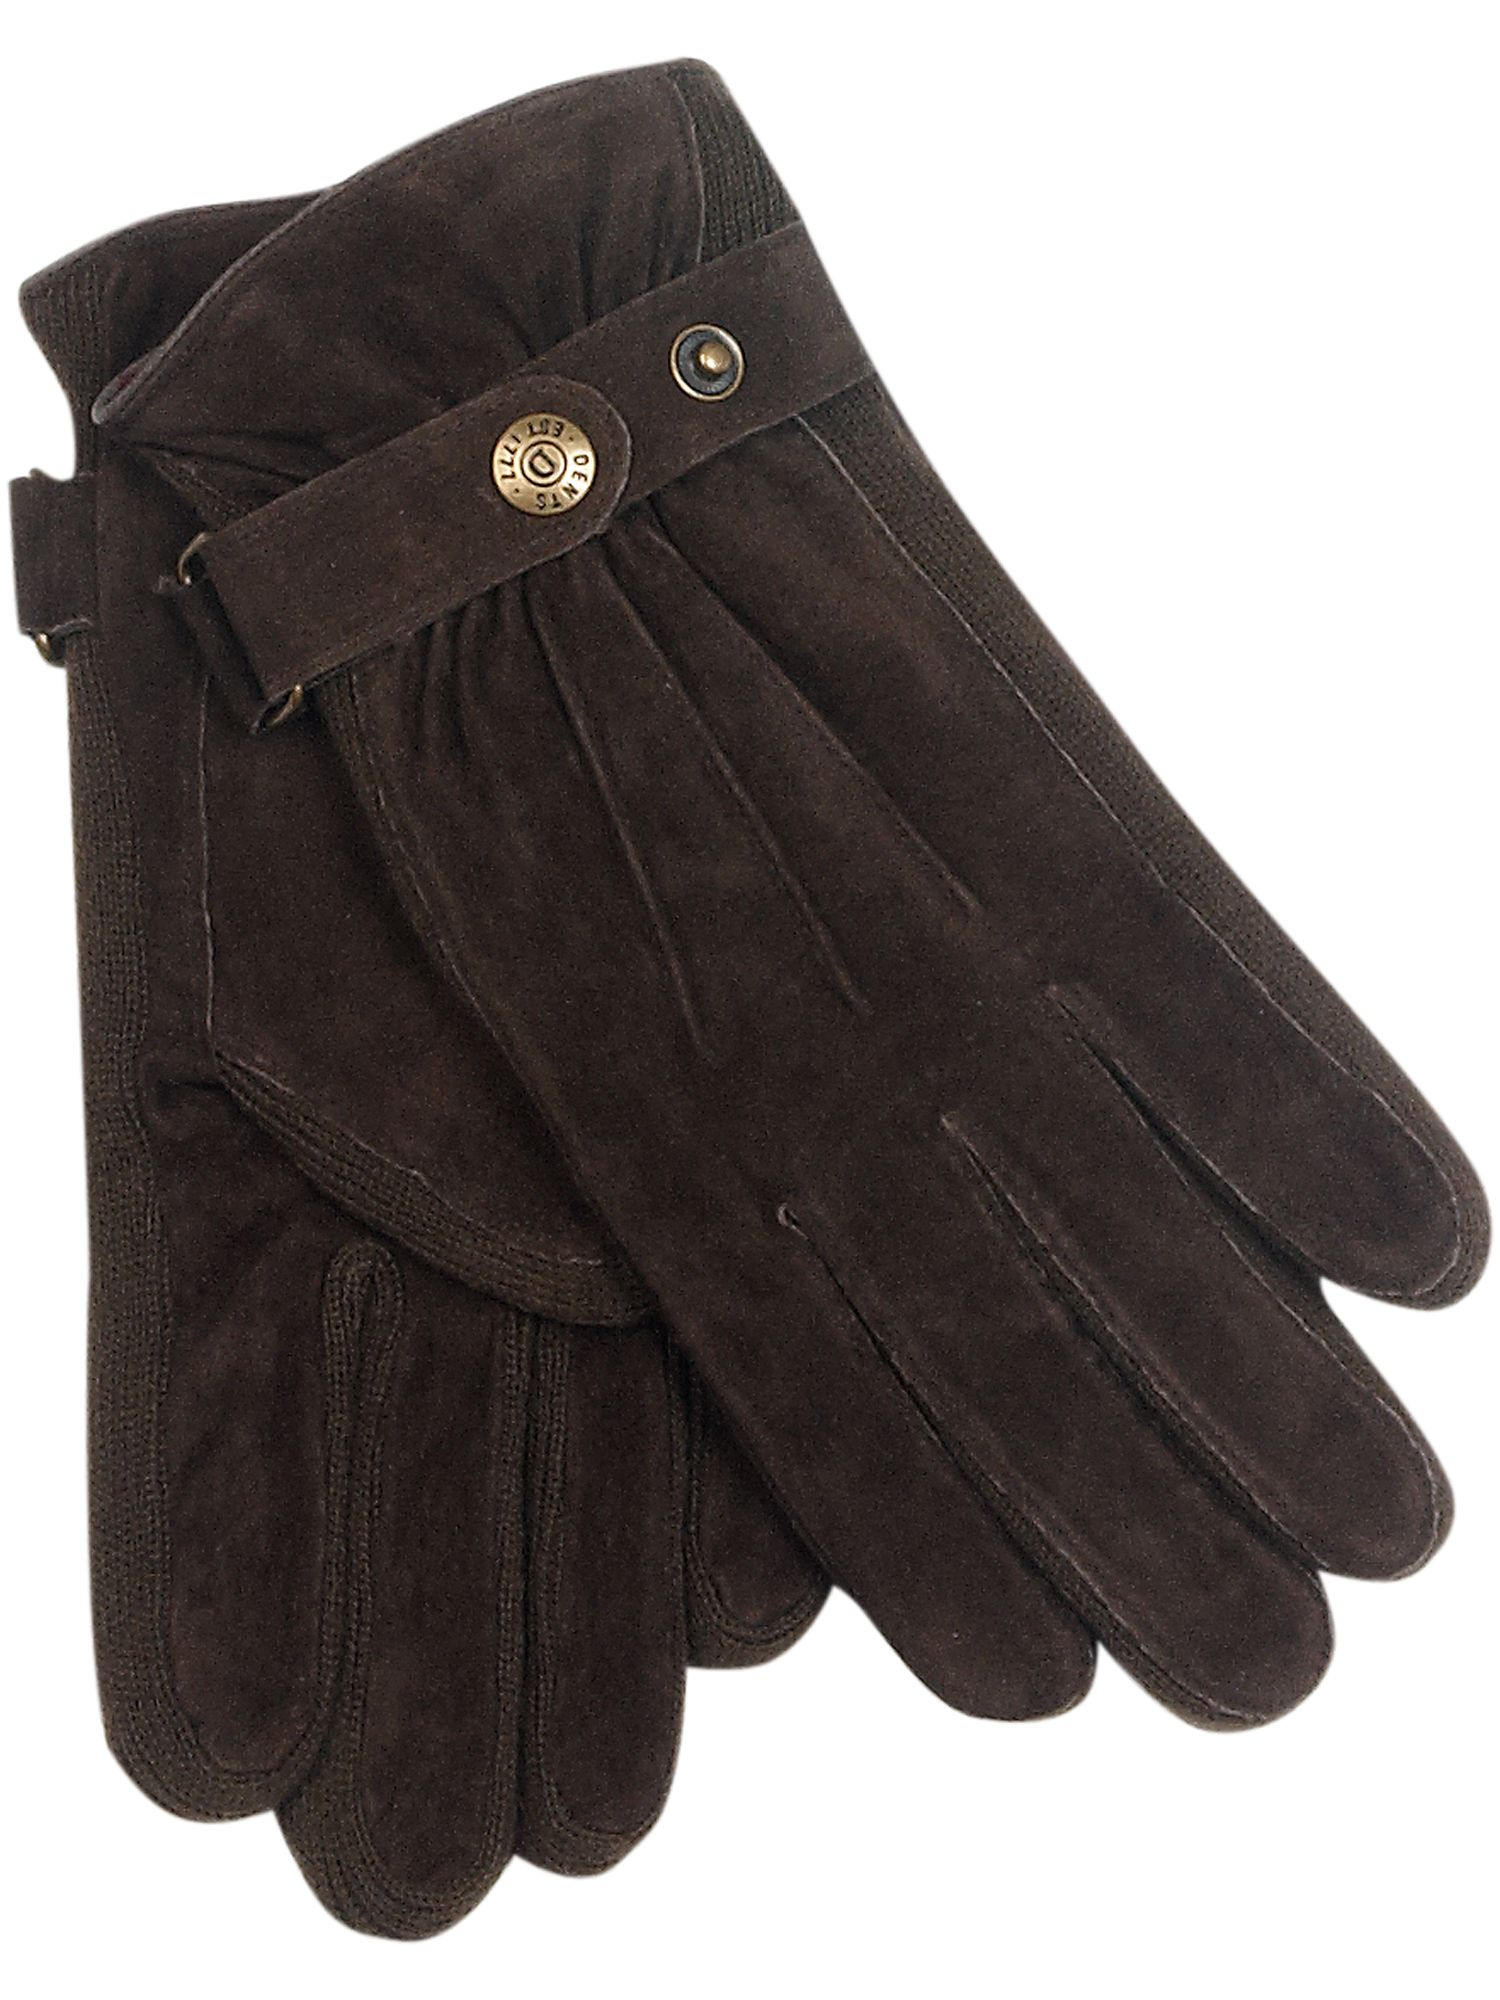 Gloves with buttoned fastener